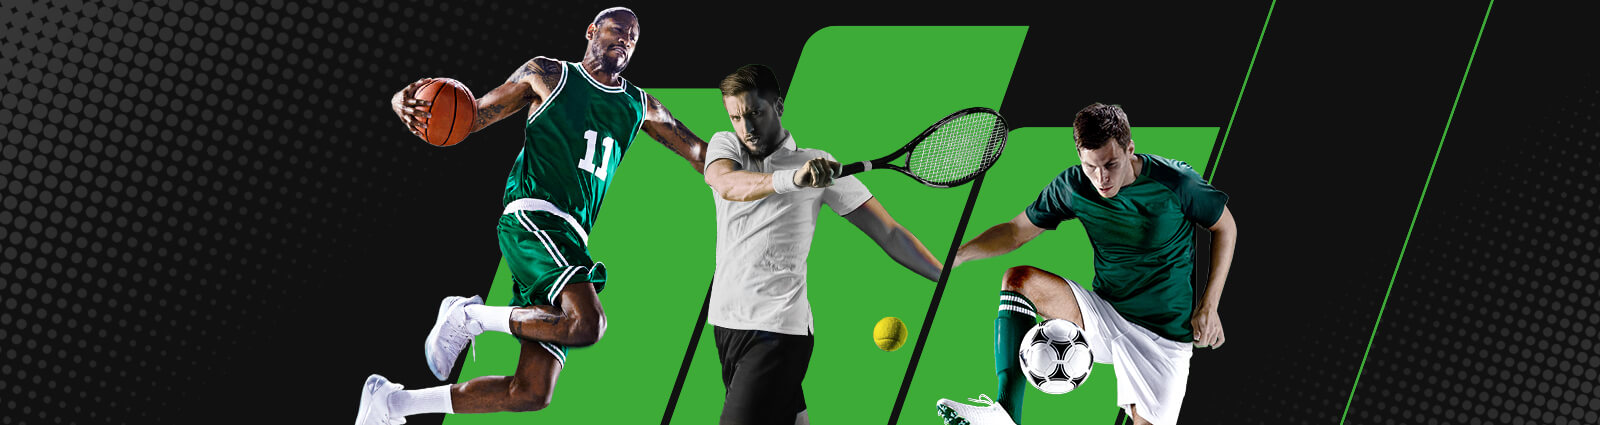 Promo page banner UNIBET_PROMO BANNER_MULTI_SPORT_BE